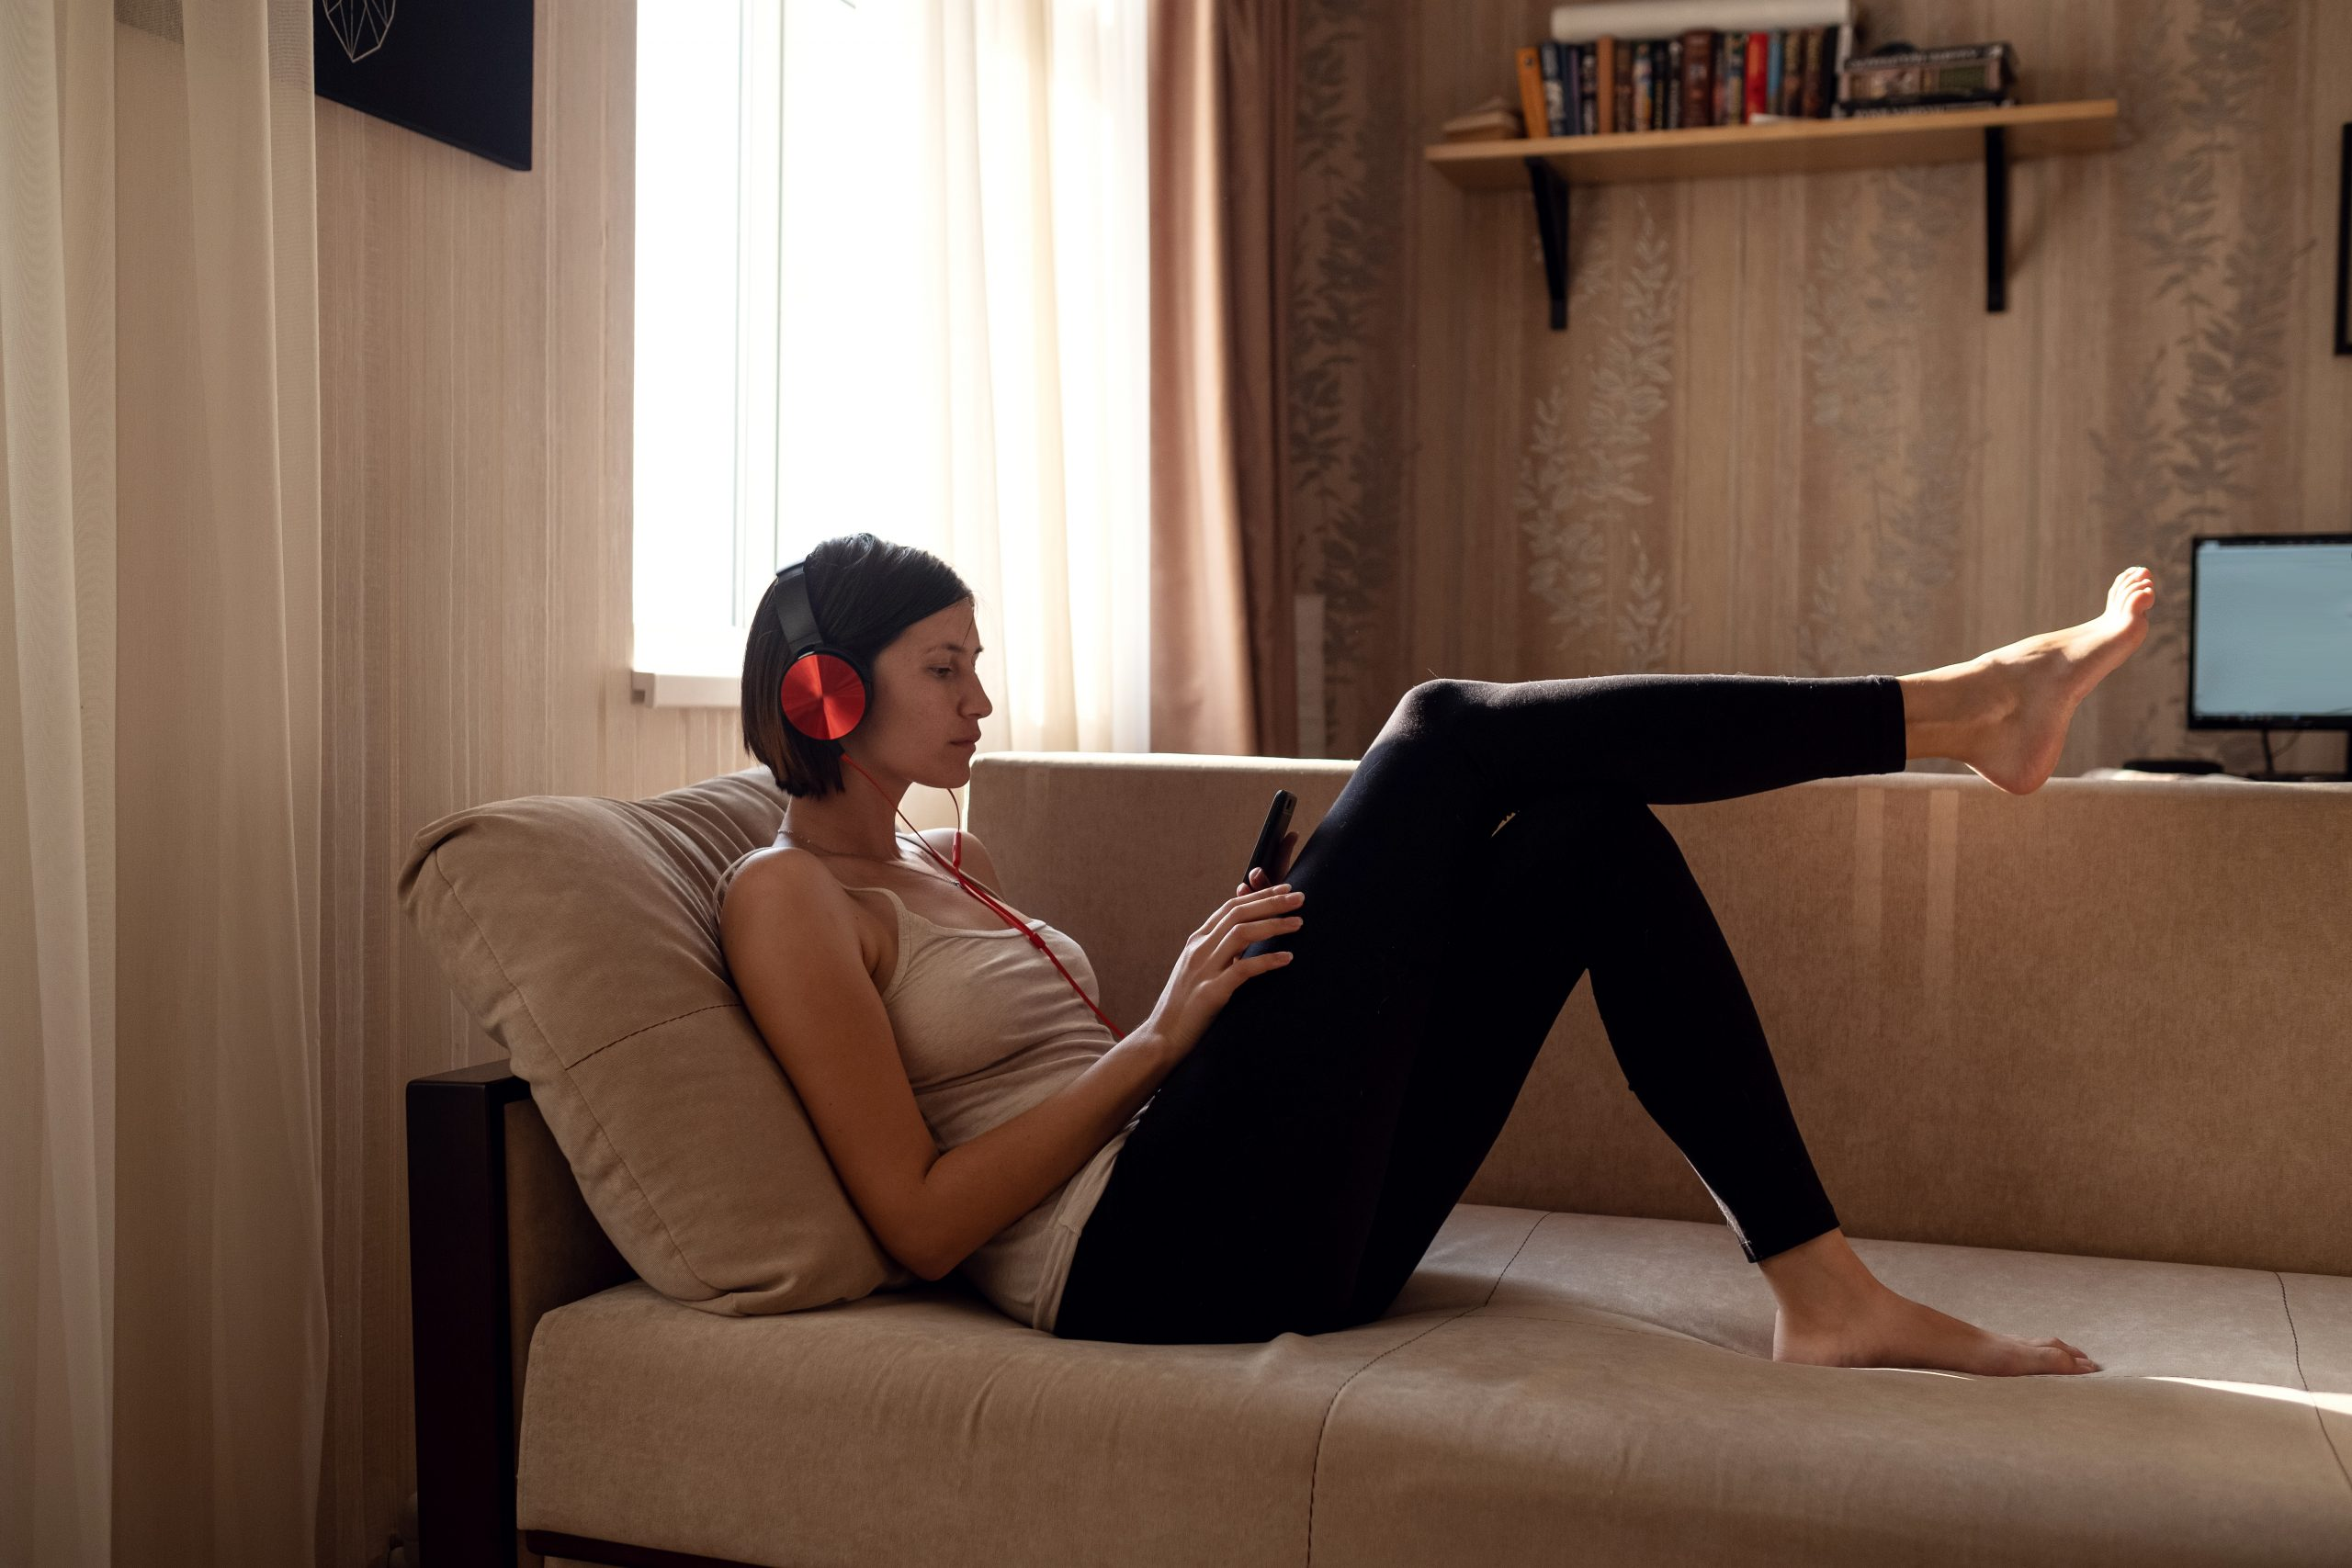 Girl on phone on couch